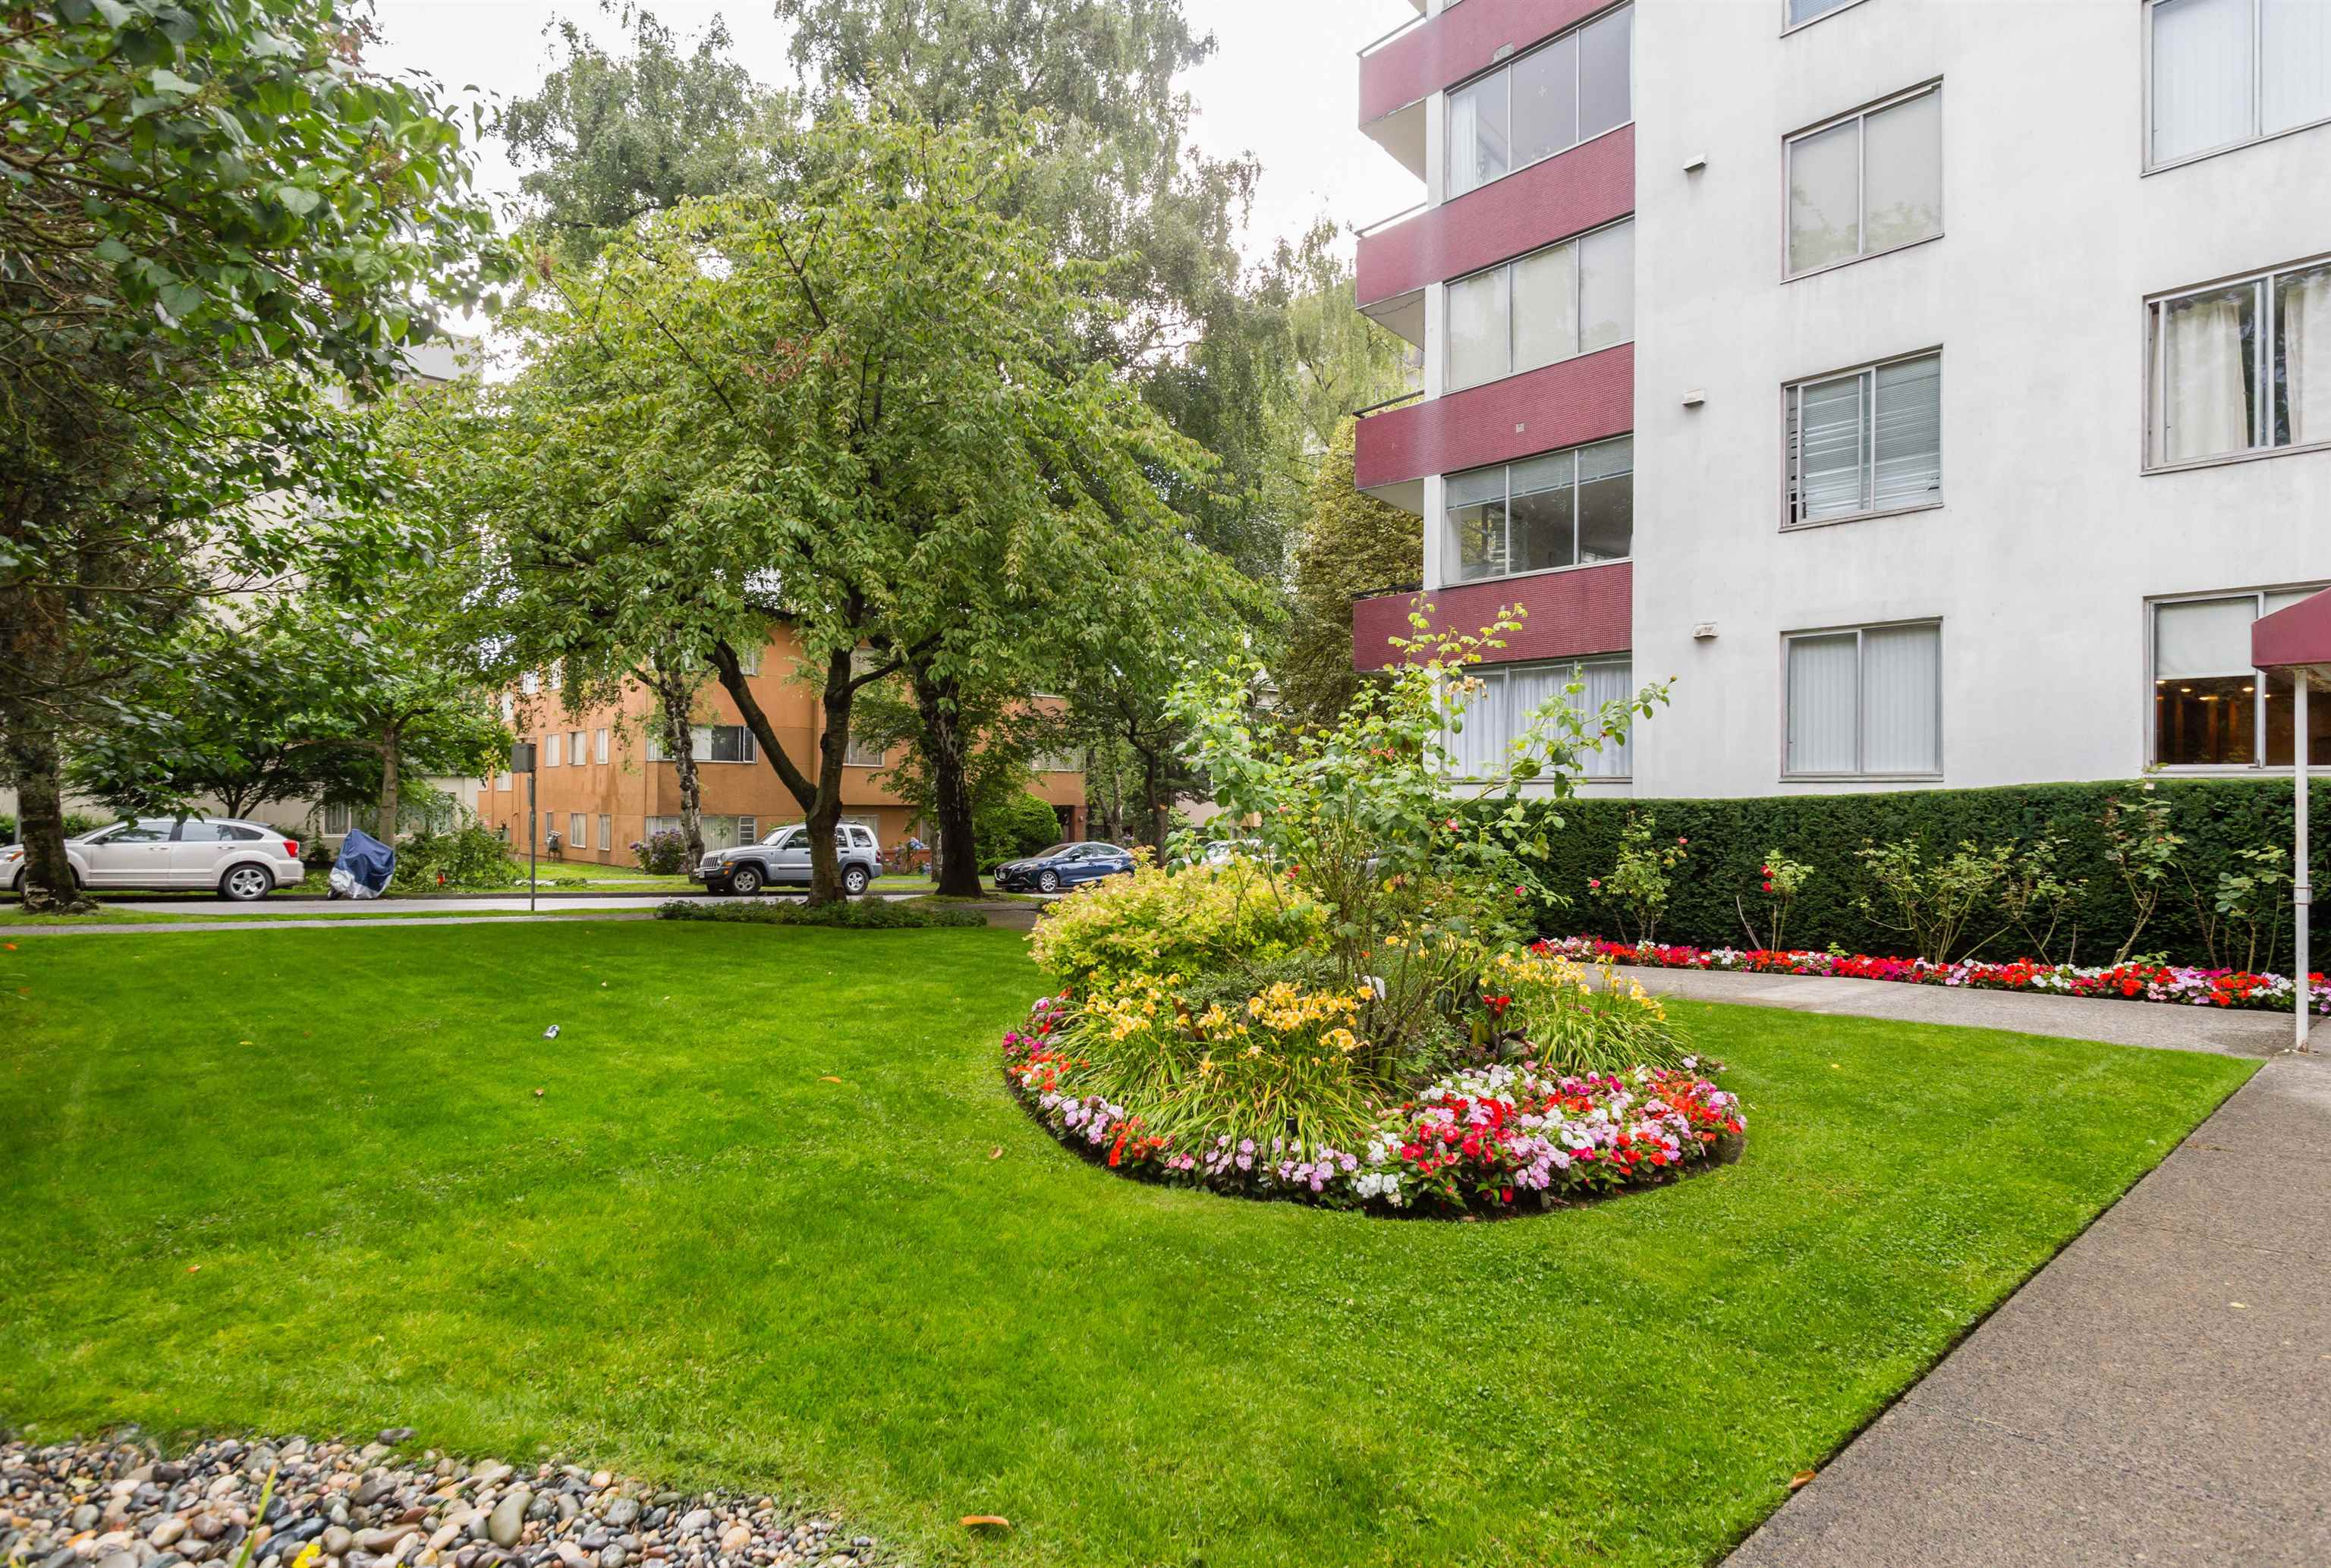 806 1251 CARDERO STREET - West End VW Apartment/Condo for sale, 1 Bedroom (R2625738) - #29